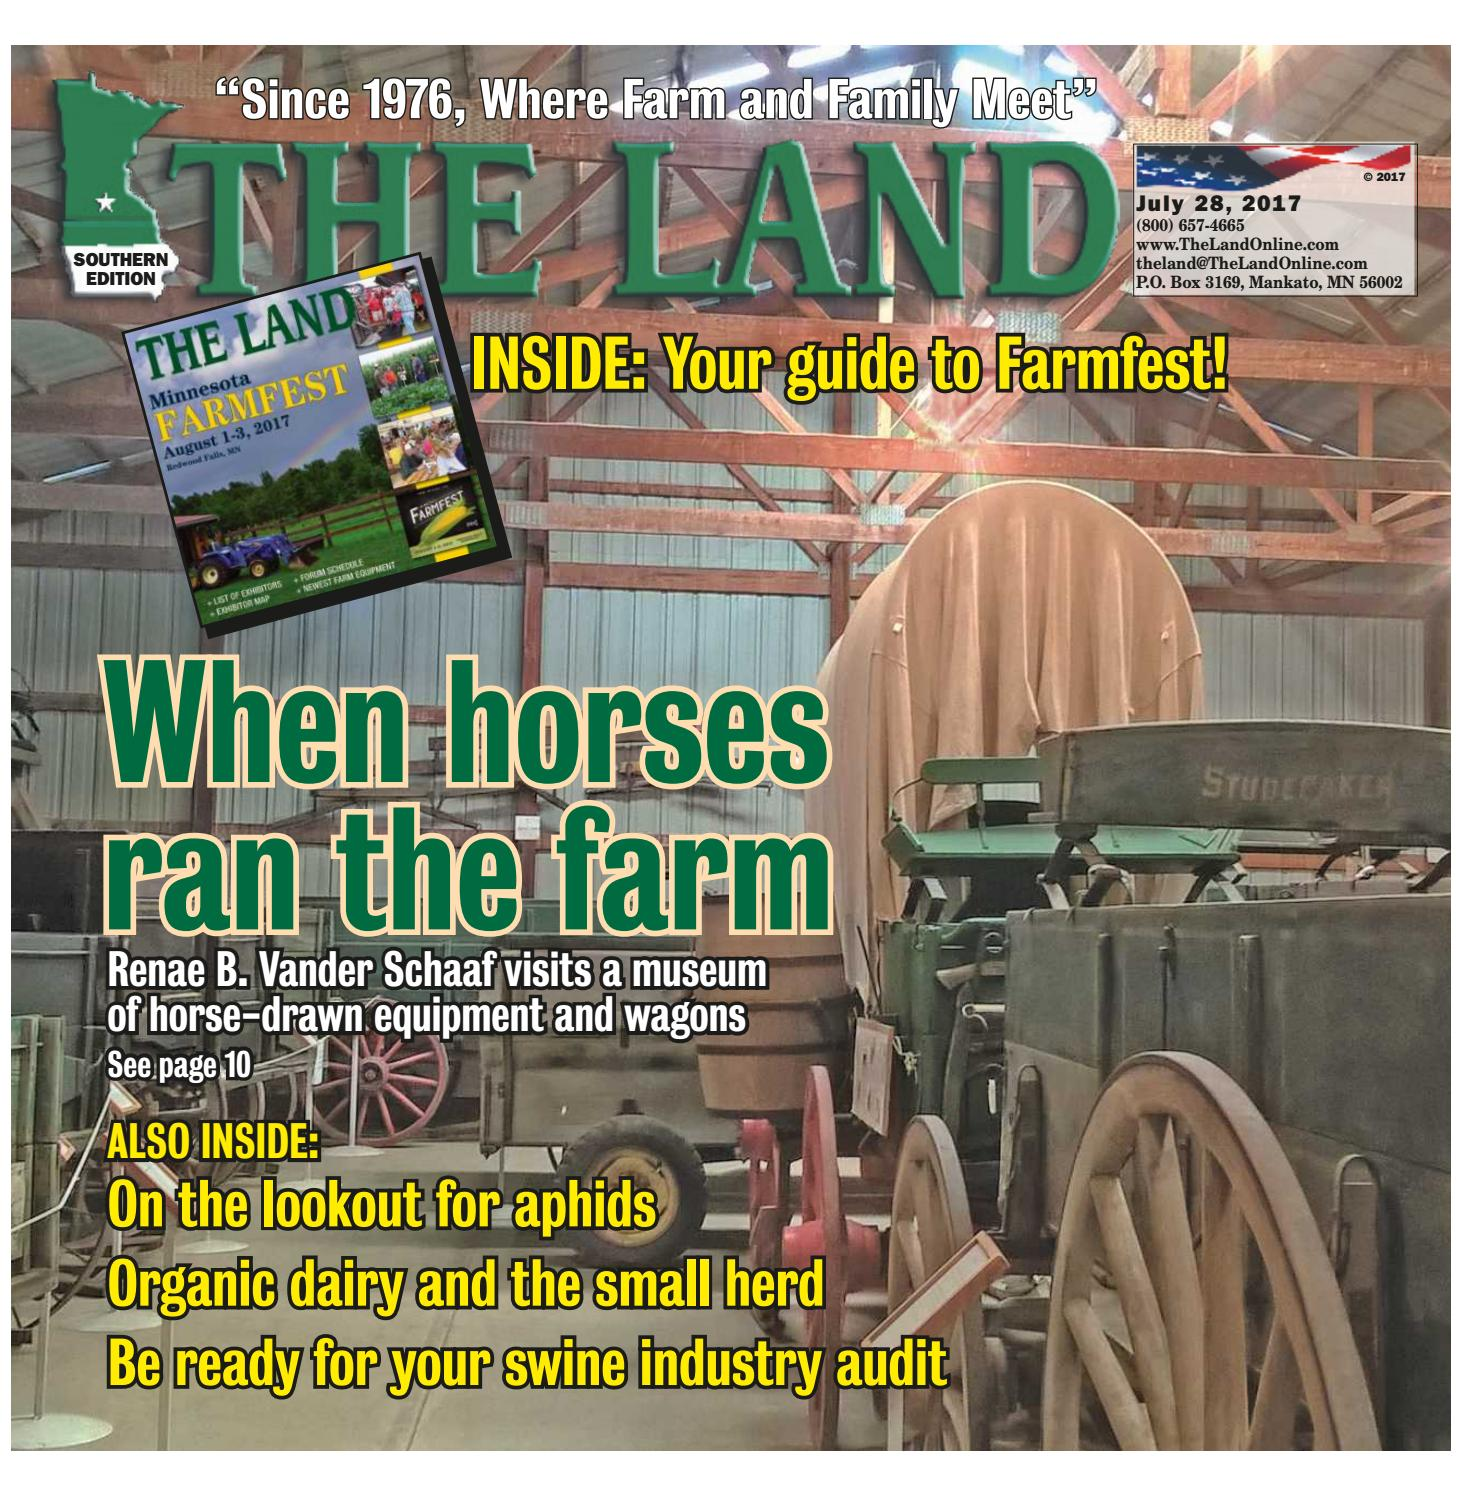 THE LAND July 28 2017 Southern Edition by The Land issuu